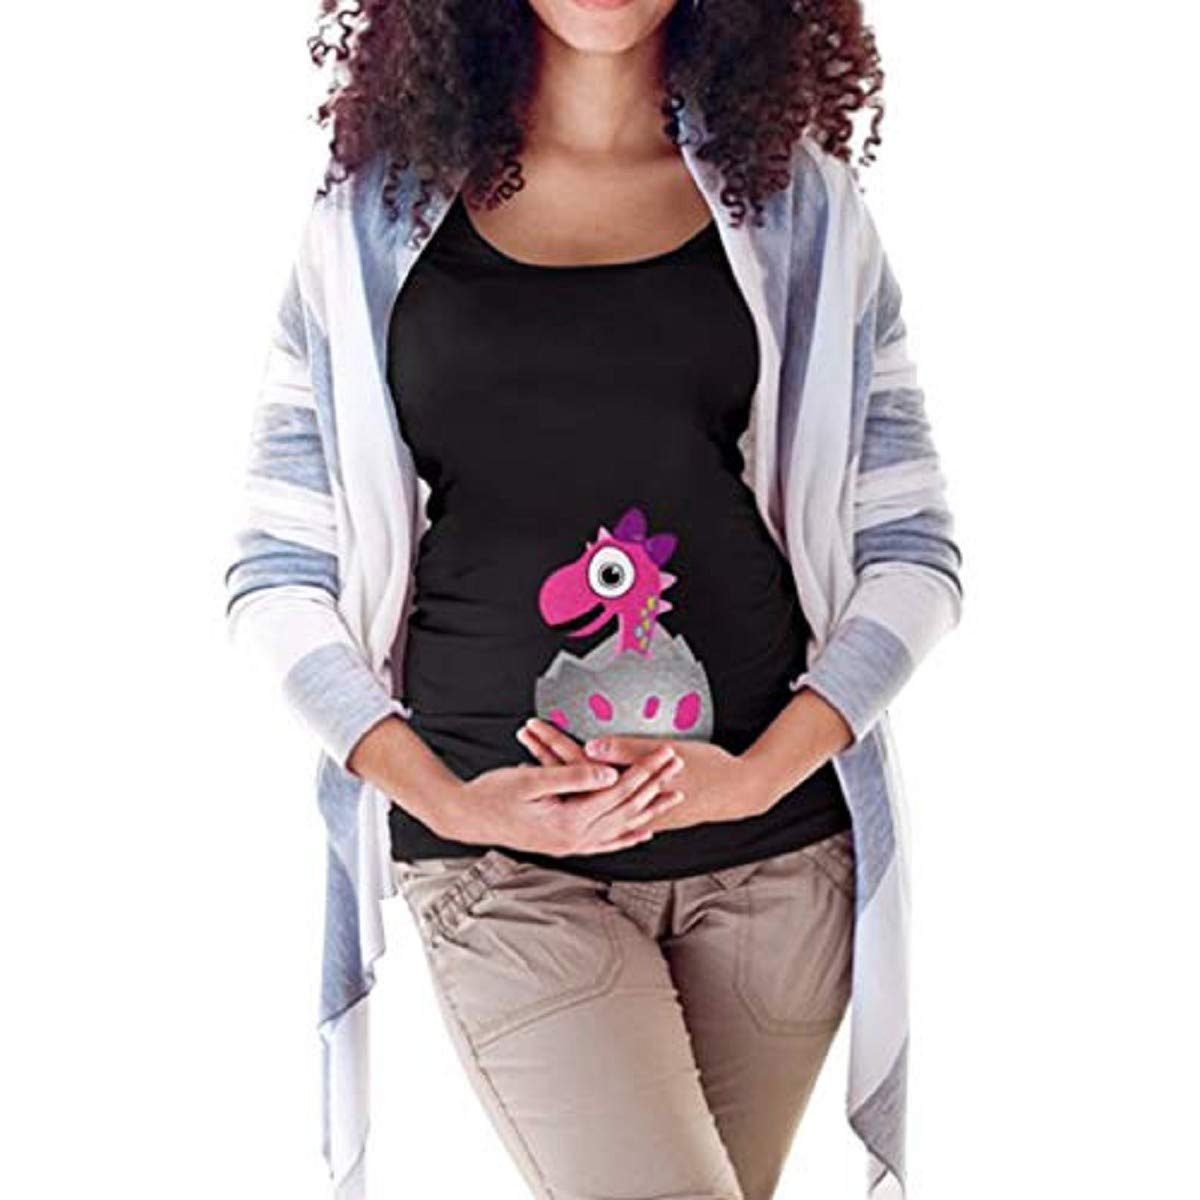 OTINICE Women's Easter T-Shirt Maternity Mommy Letter Egg Dinosaur Tops Pregnancy Clothes (XXL, Black-1)